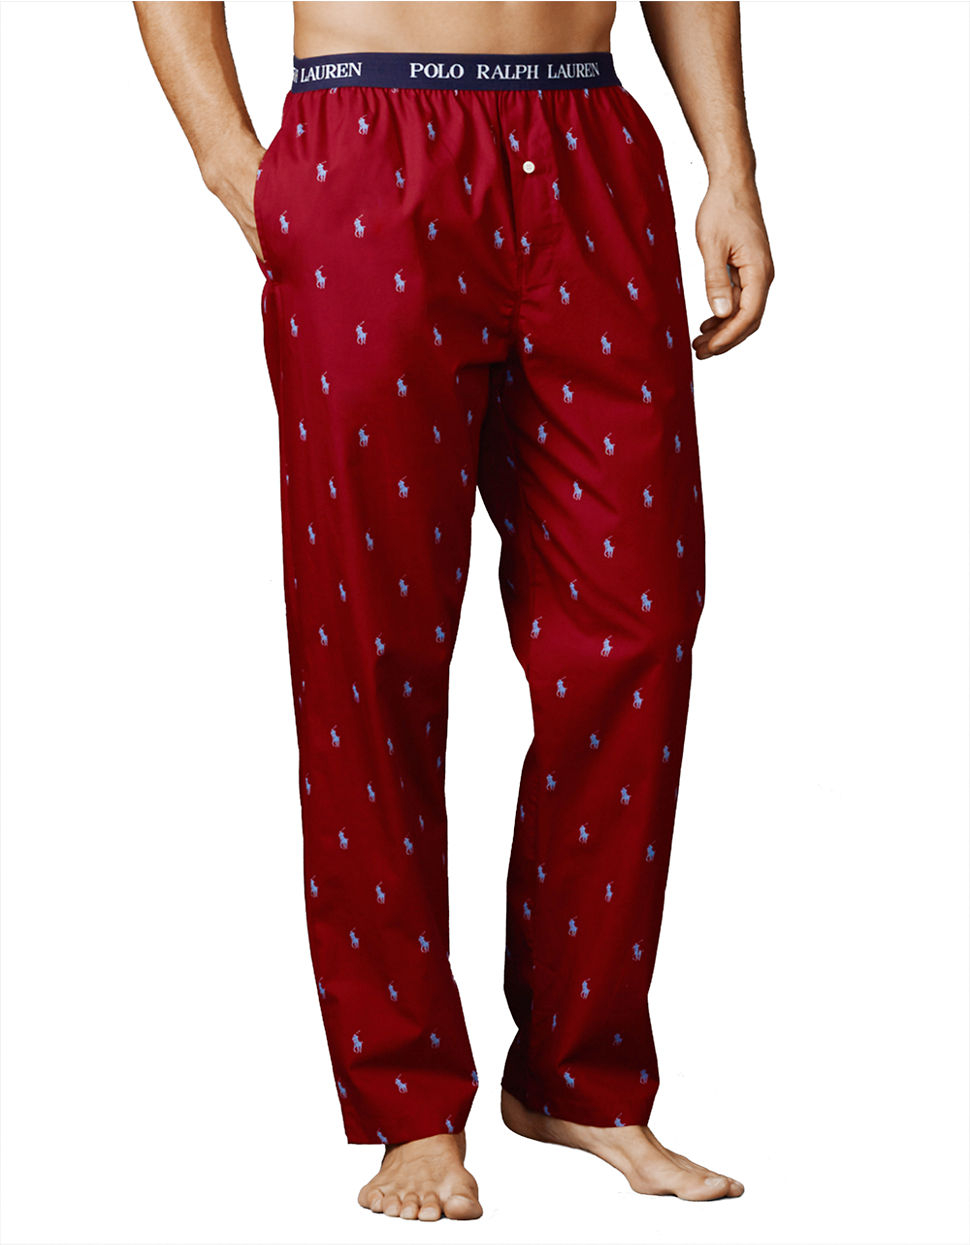 Find great deals on eBay for polo pajama pants. Shop with confidence.